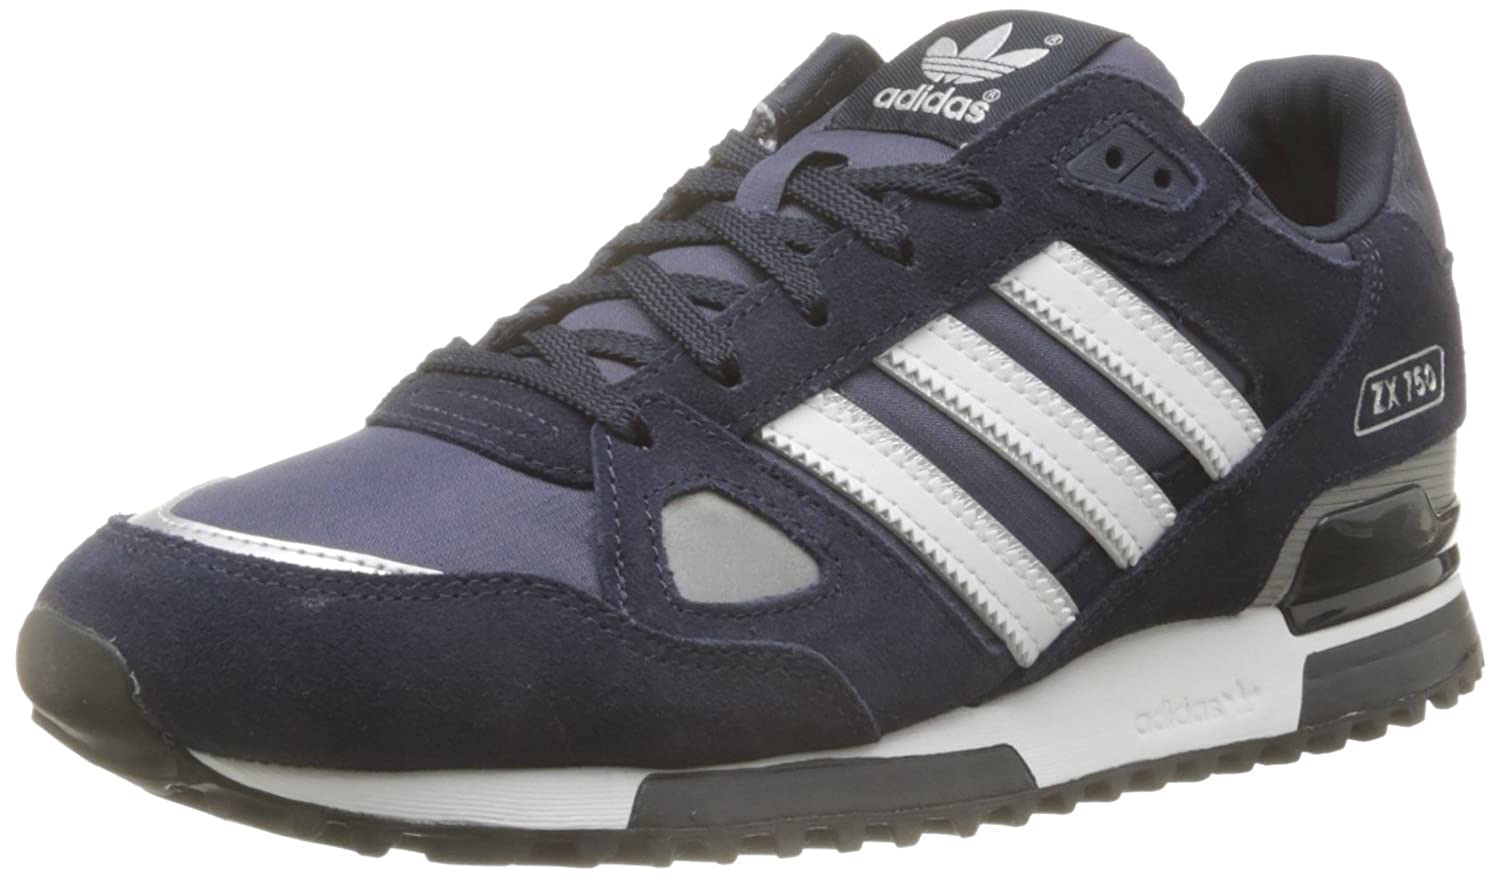 online retailer 1d0da 6c3ce Adidas Originals ZX 750 Sports Casual Shoes Men s Trainers  Amazon.co.uk   Shoes   Bags